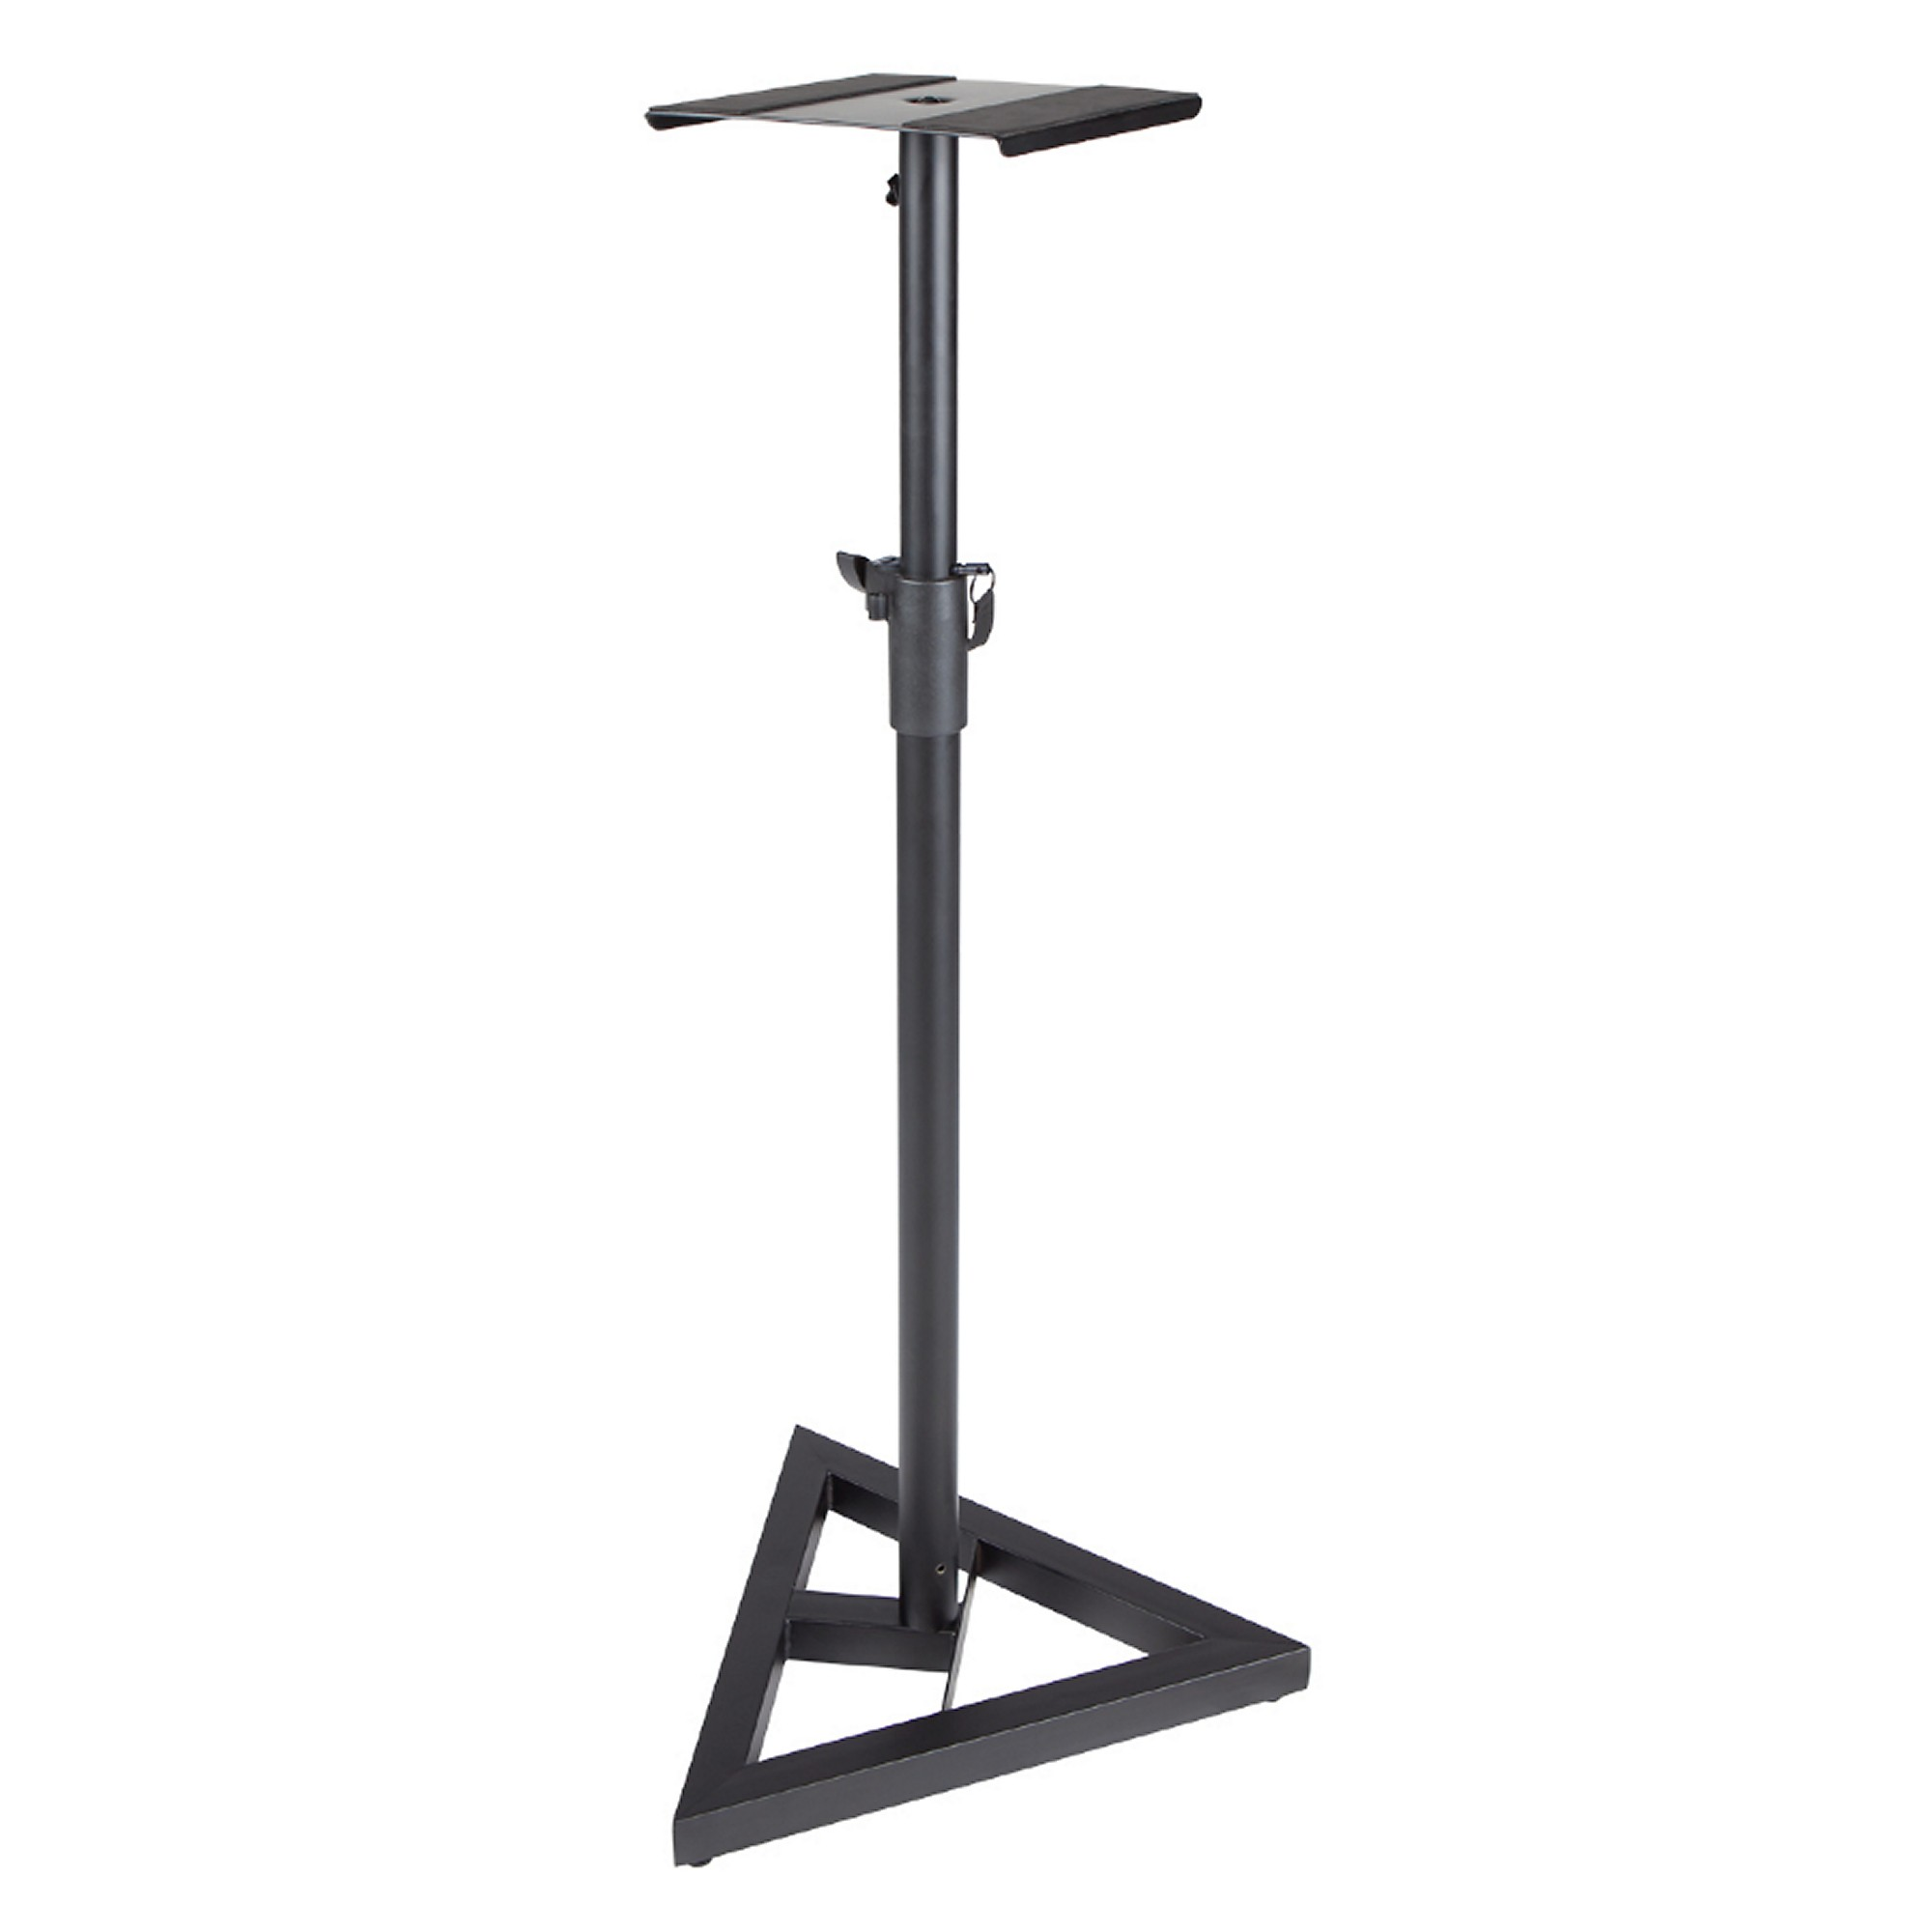 Adjustable Studio Monitor Stand - PL600P